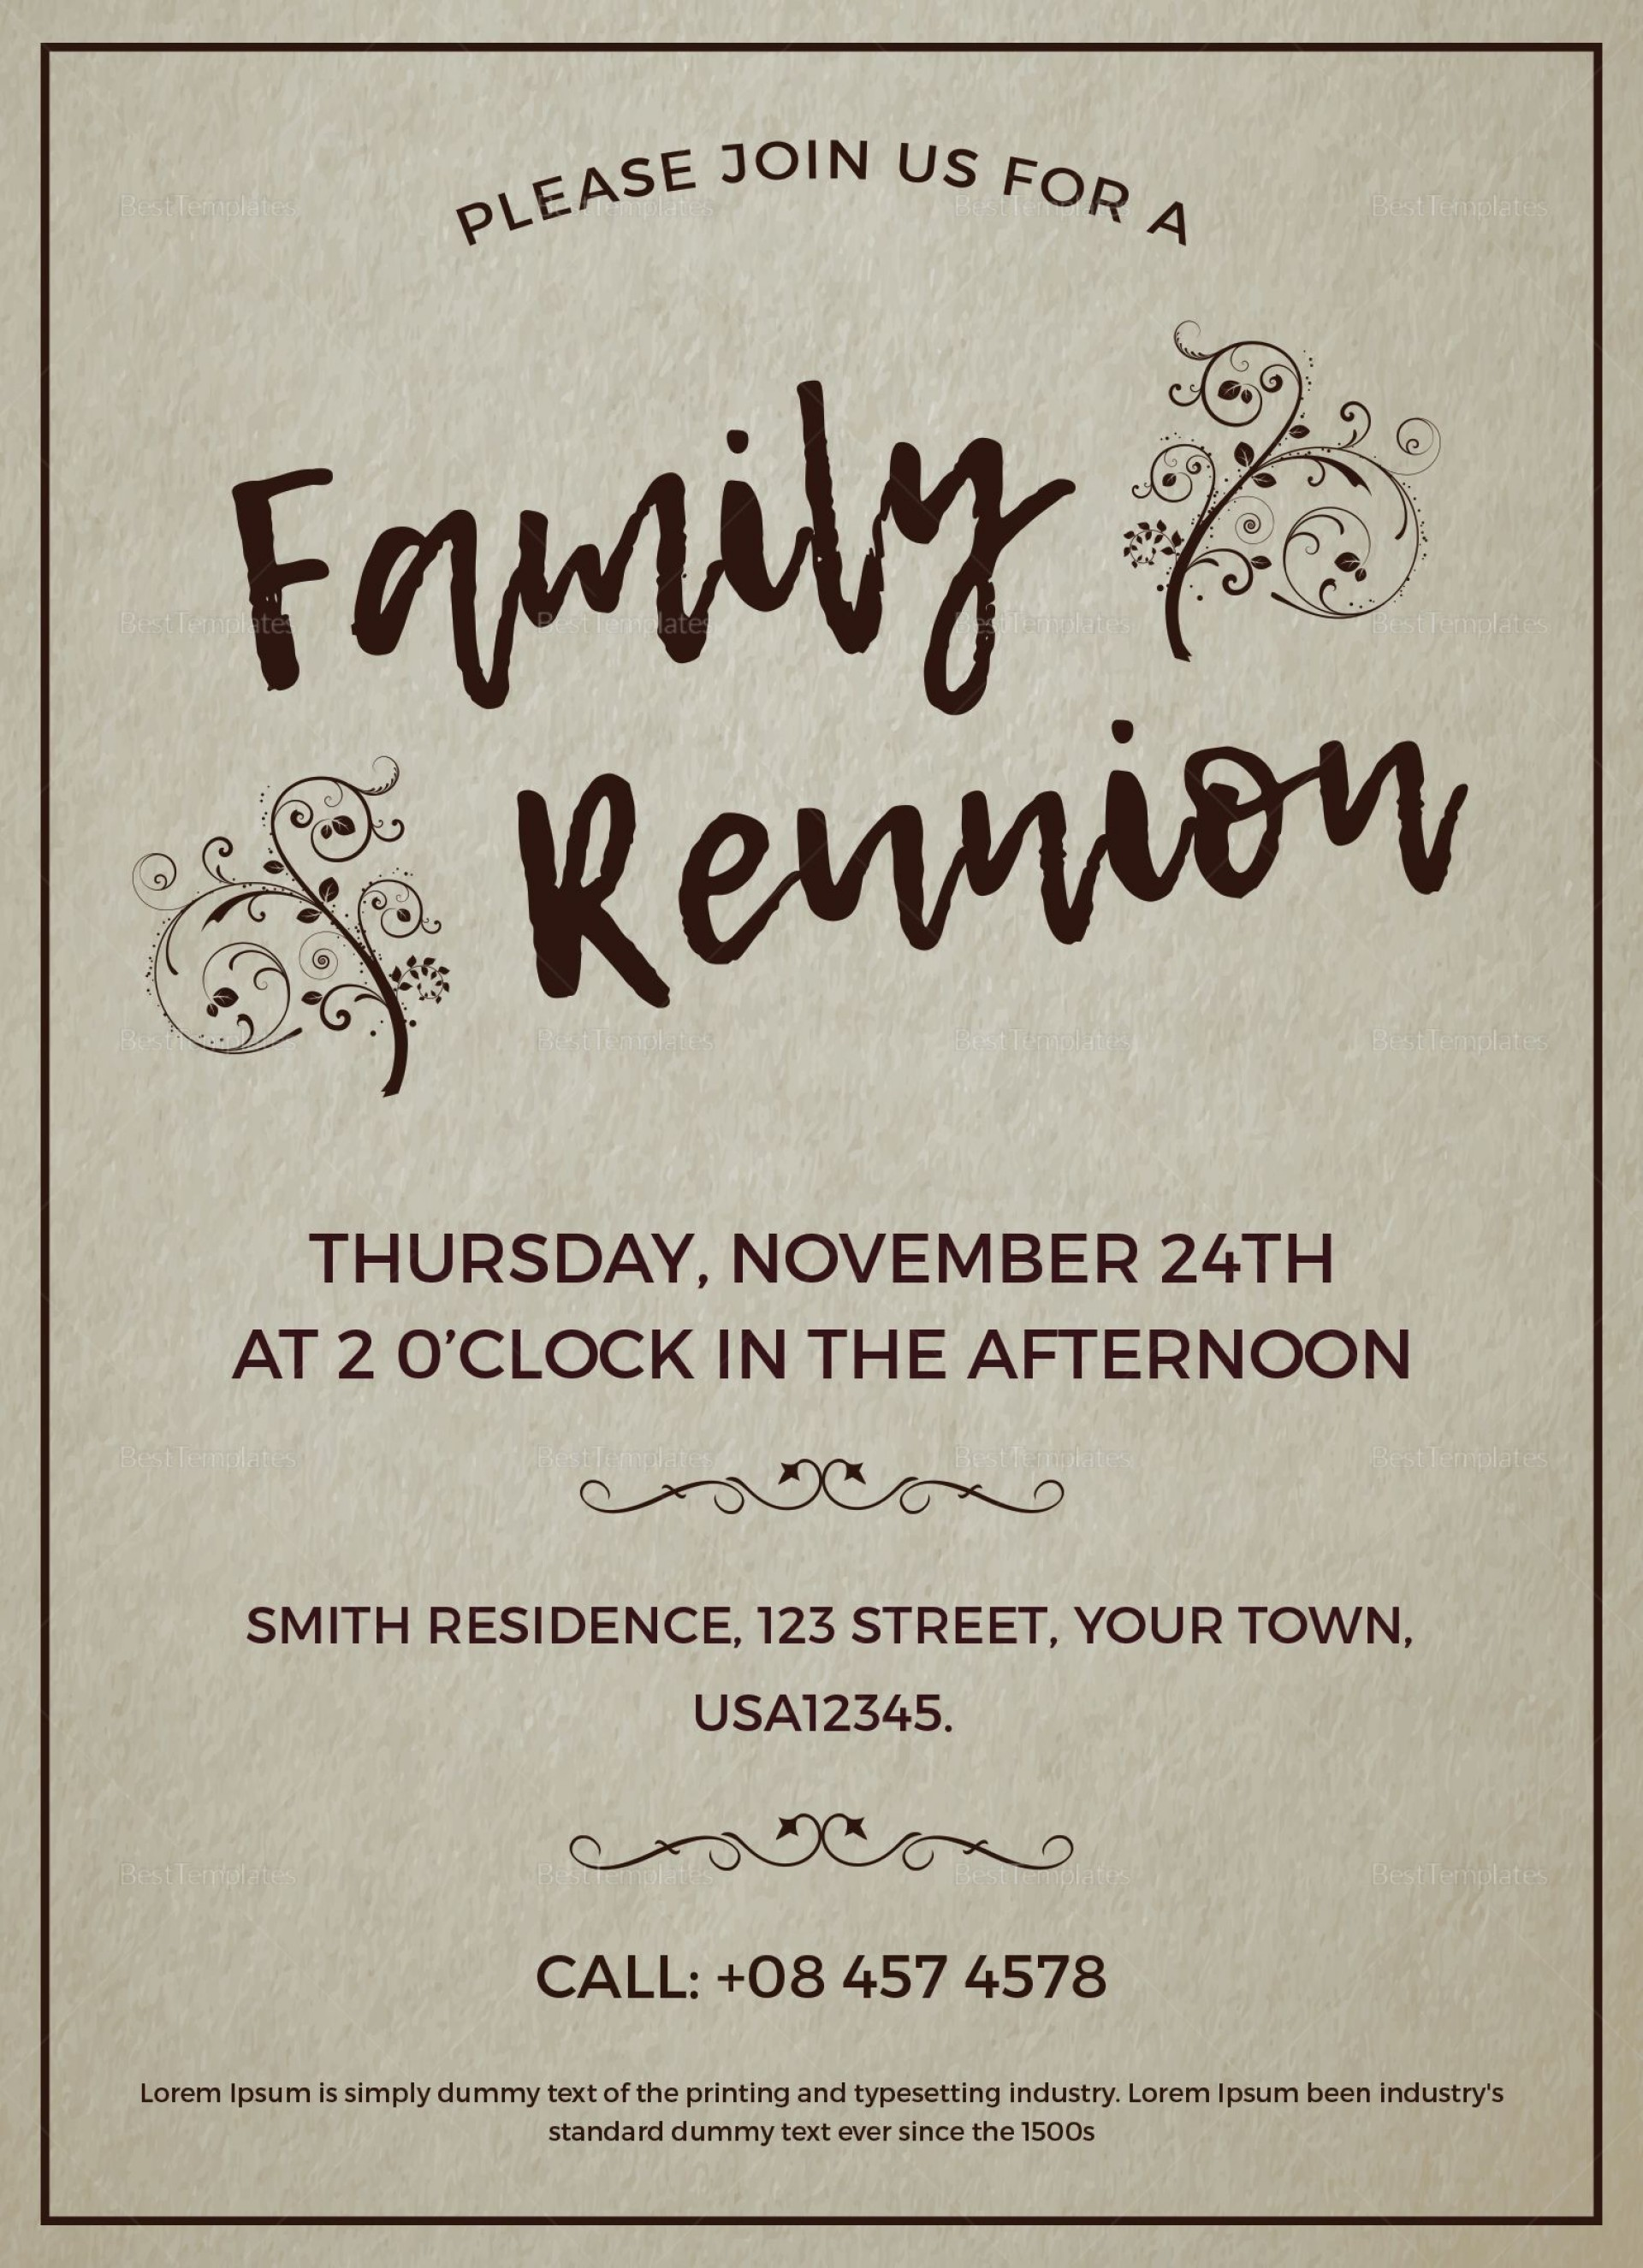 002 Formidable Family Reunion Flyer Template Word High Def 1920